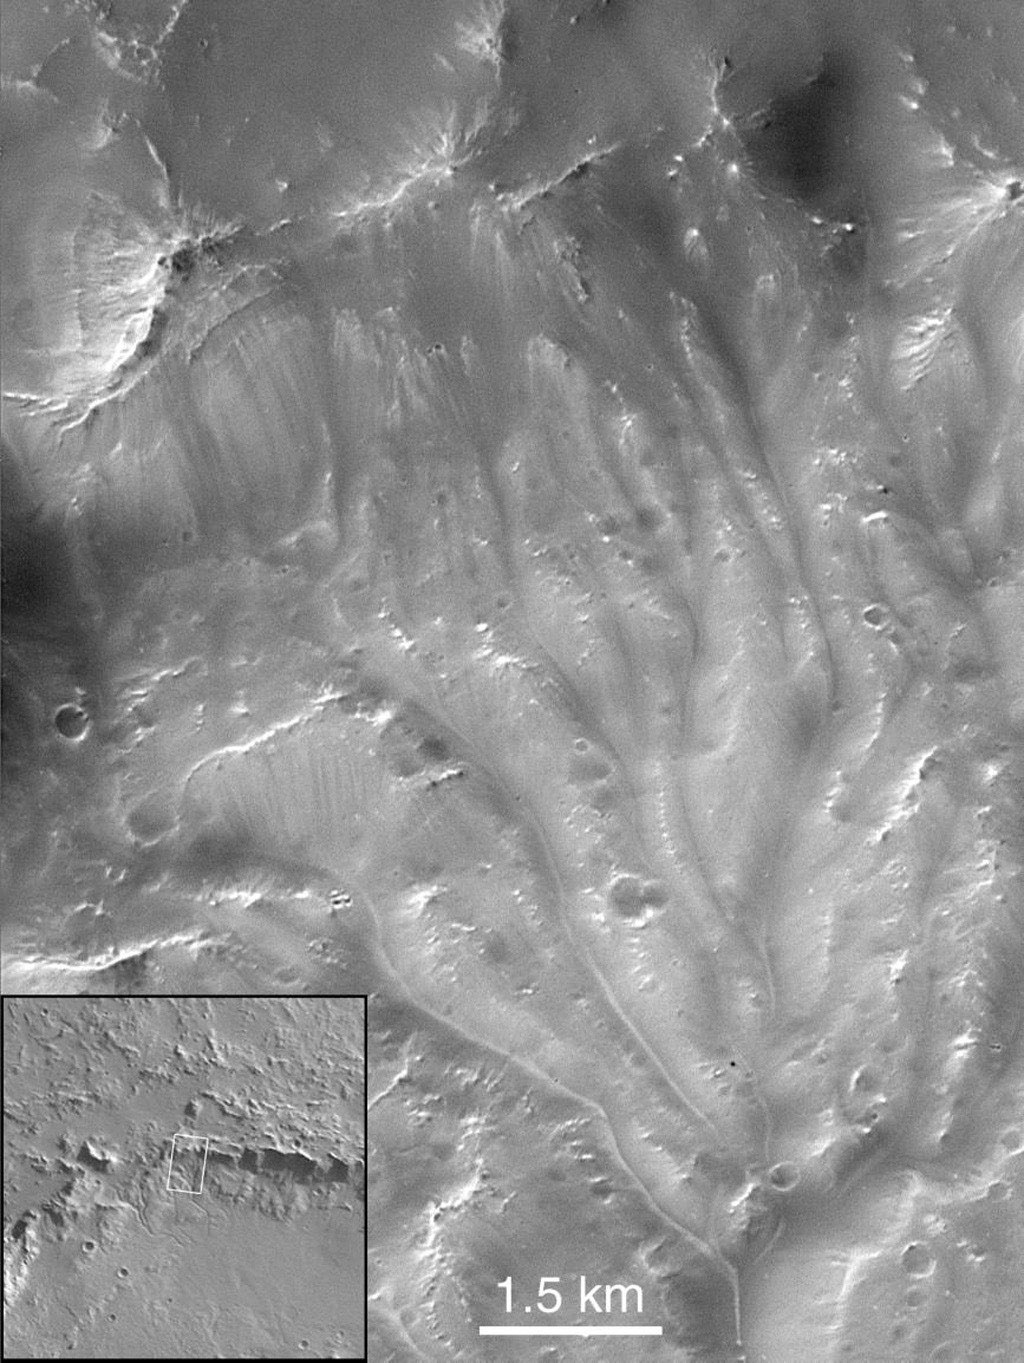 NASA's Mars Global Surveyor shows a portion of channels on the wall of Bakhuysen crater on Mars. These channels are the best examples of integrated drainage reminiscent of terrestrial systems.